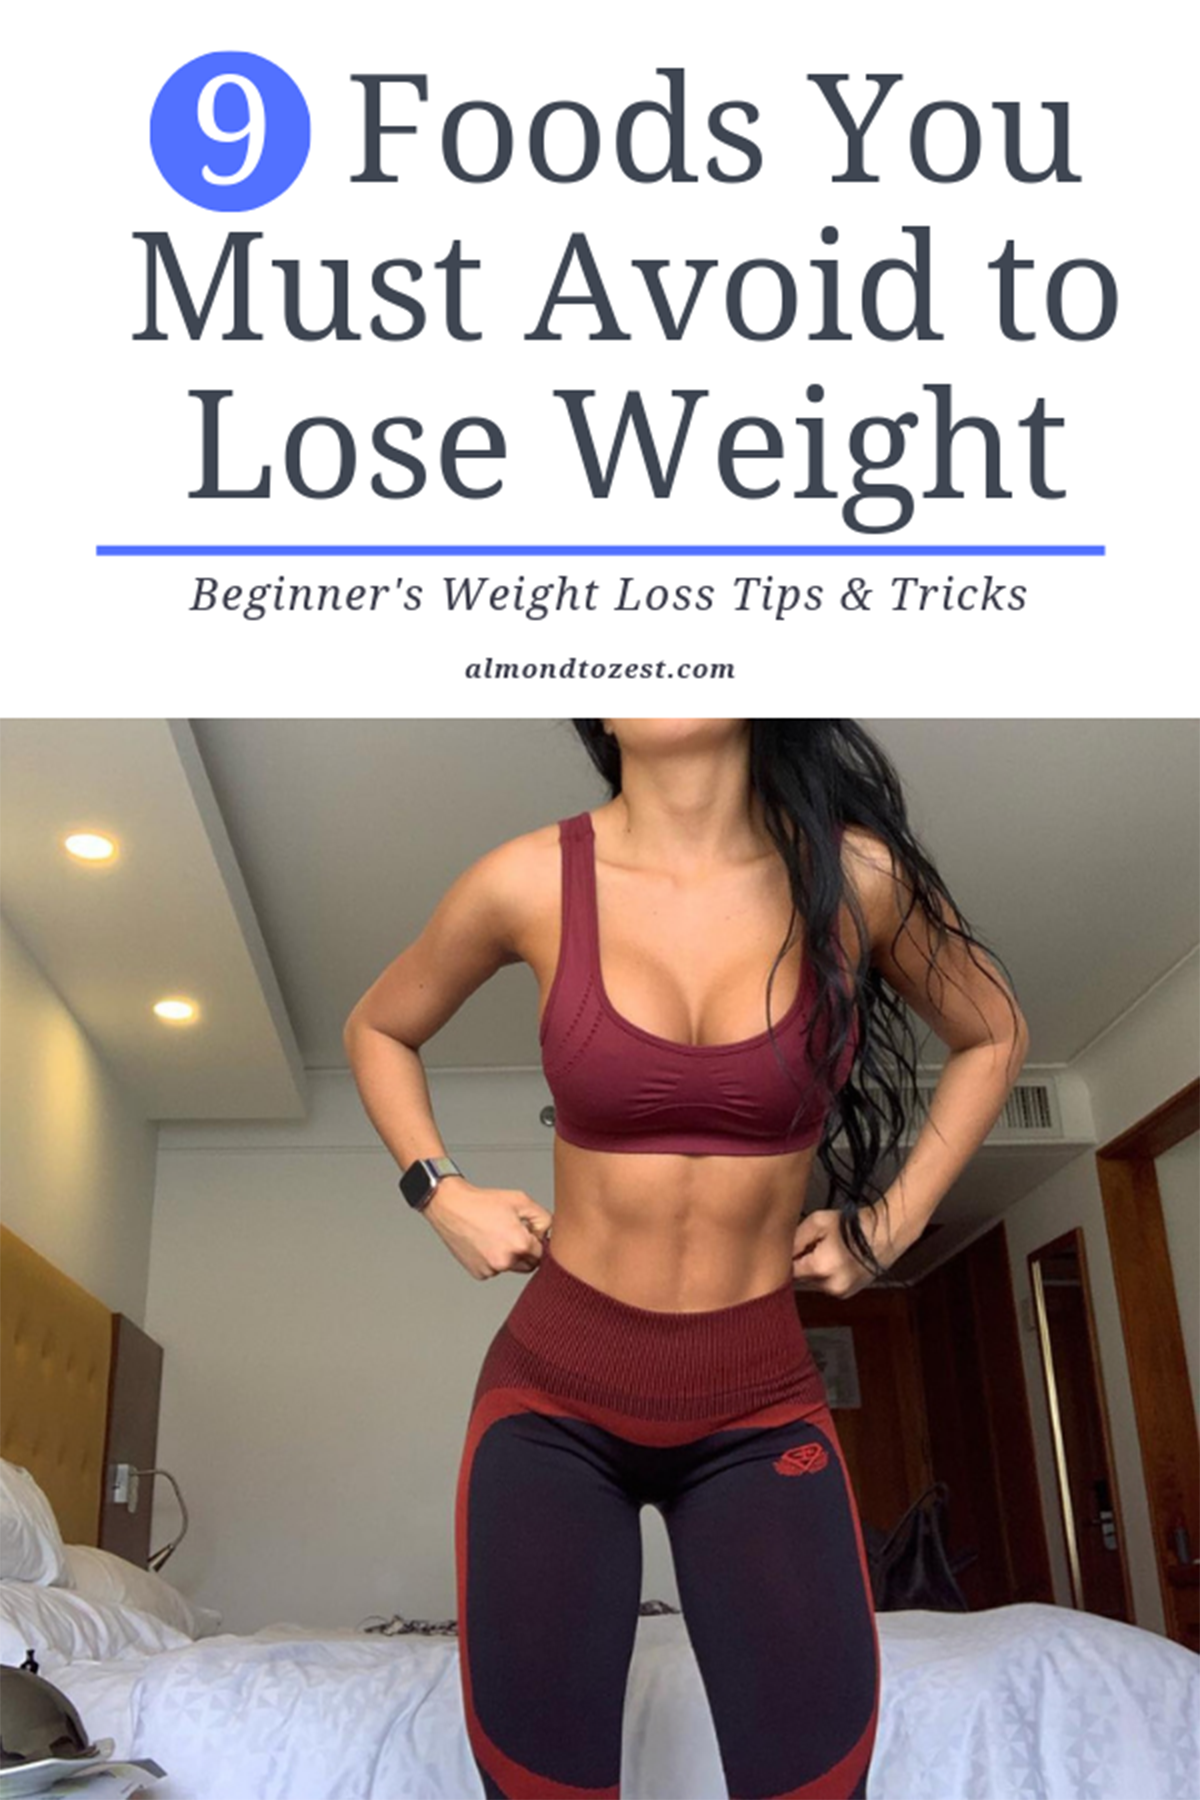 Fast weight loss easy tips #weightlosshelp <= | start losing weight fast#weightlossjourney #fitness...